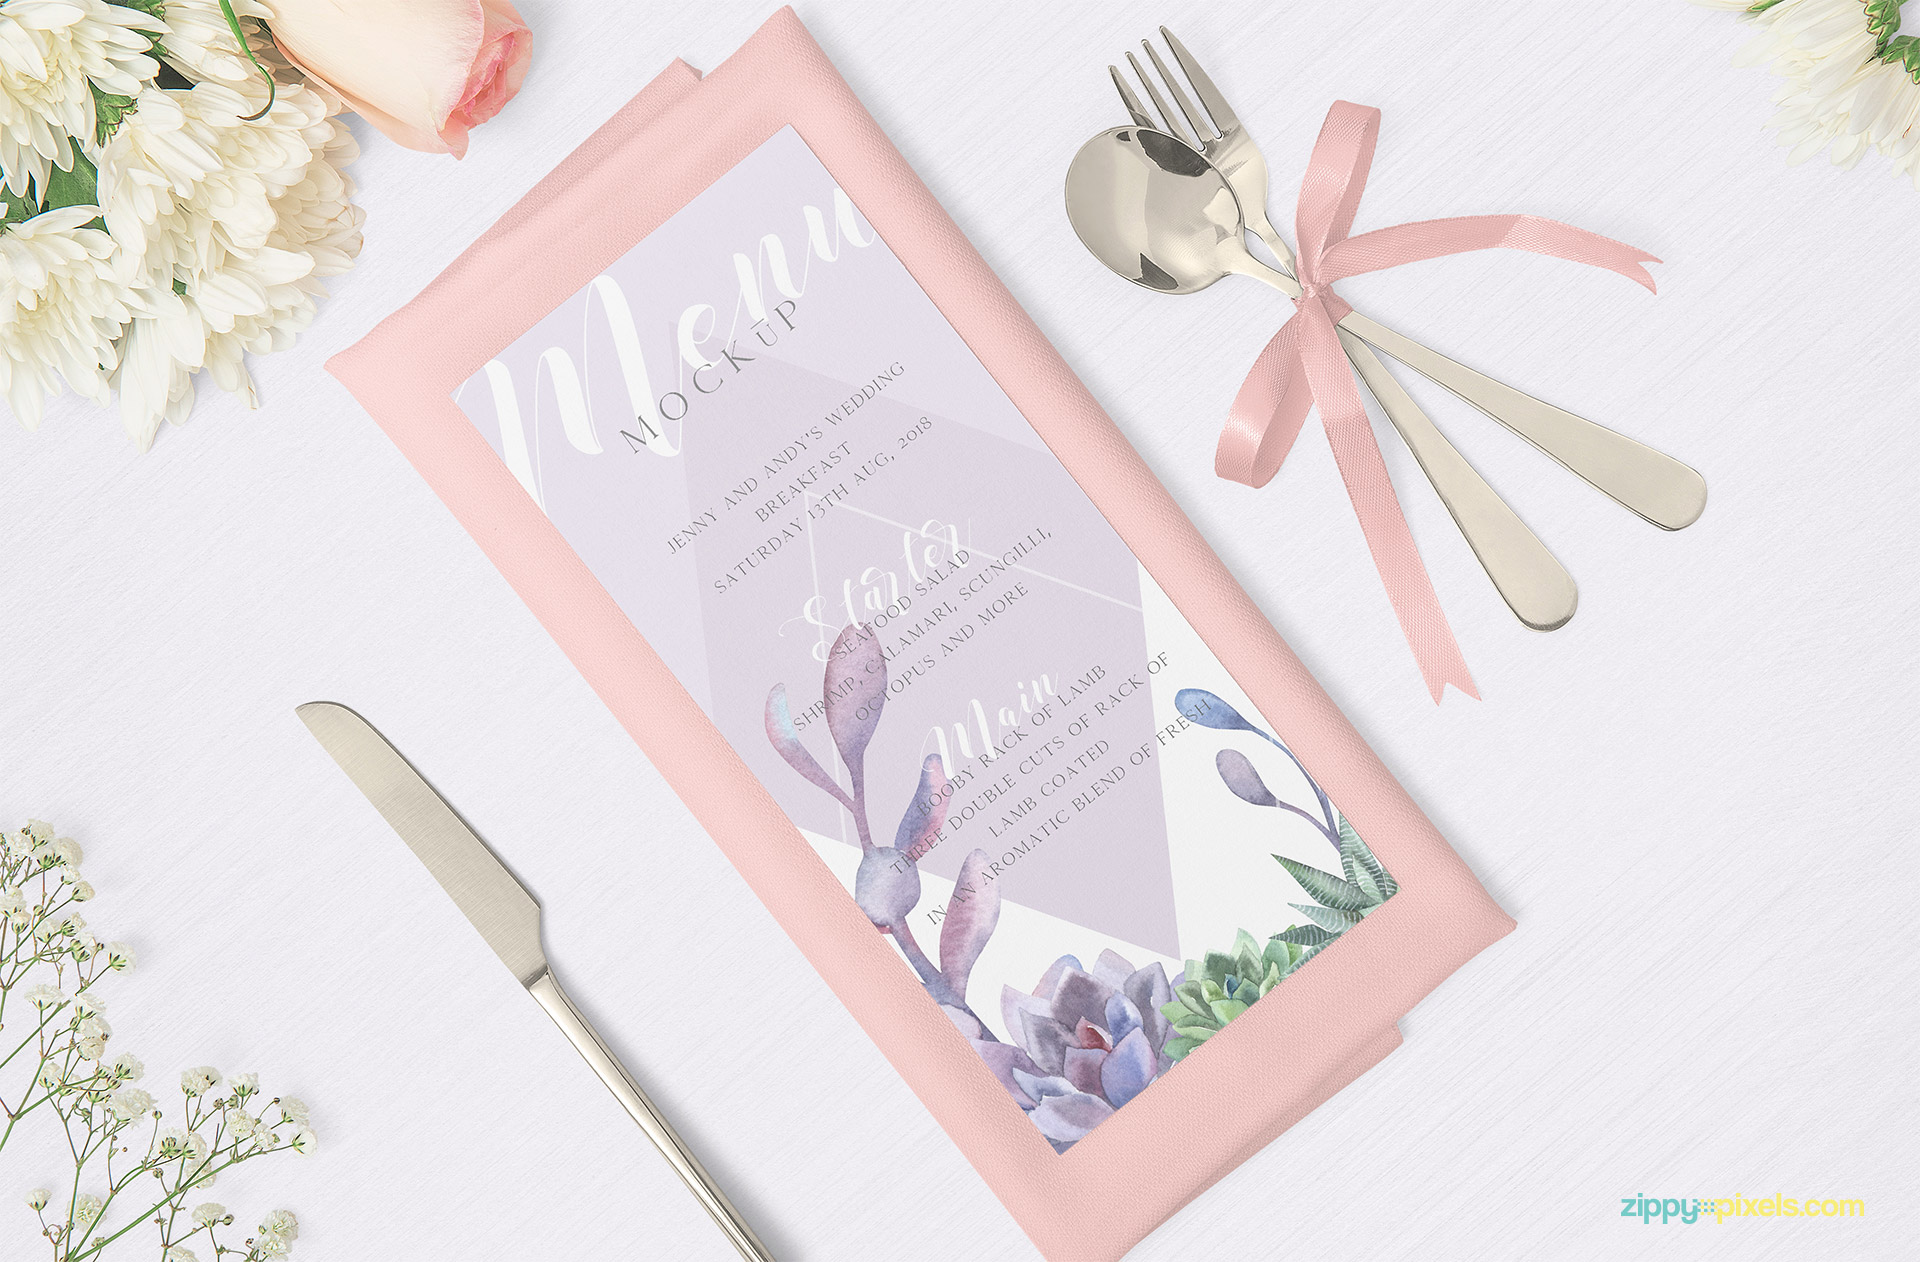 Gorgeous and attractive menu mockup scene.